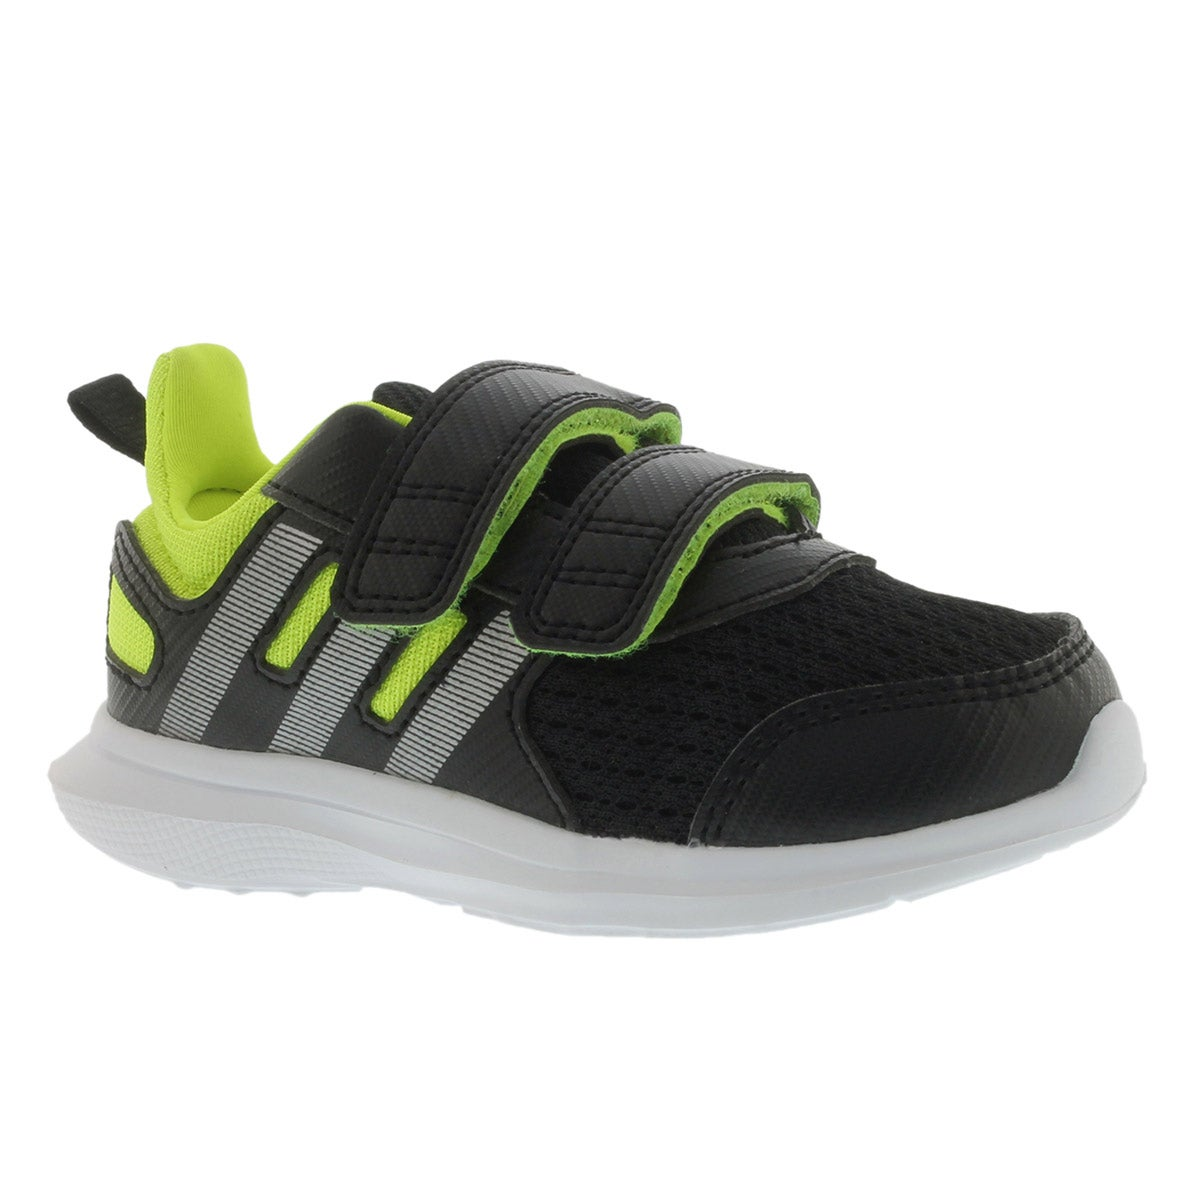 Infants' HYPERFAST 2.0 black/yellow running shoes